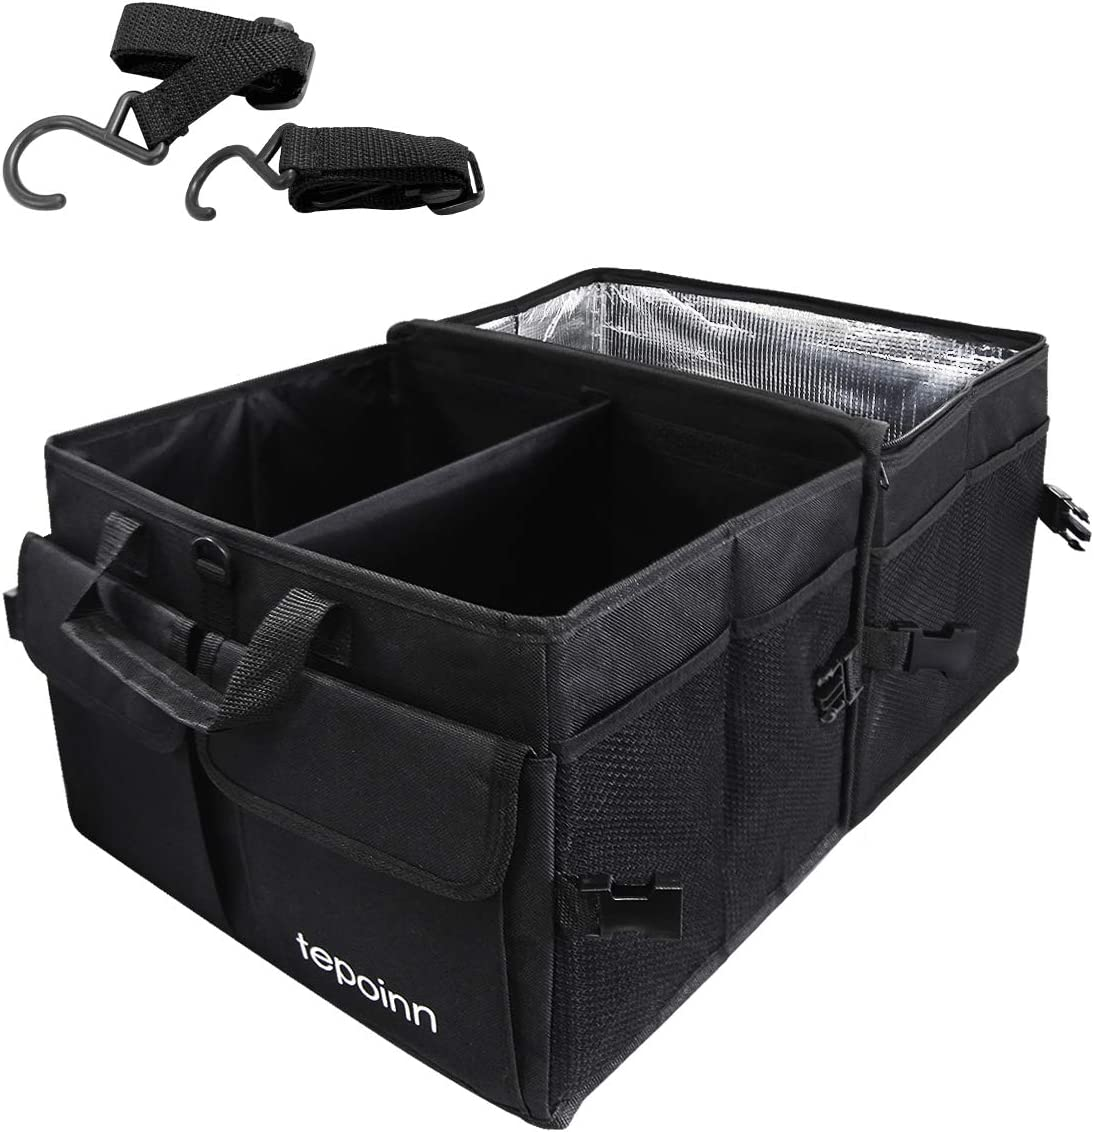 Tepoinn Car Trunk Organizer with Cooler, Compartment Collapsible Portable Trunk Storage Container with Non Slip Bottom Strips, Foldable Waterproof Cover Car Storage Box for SUV